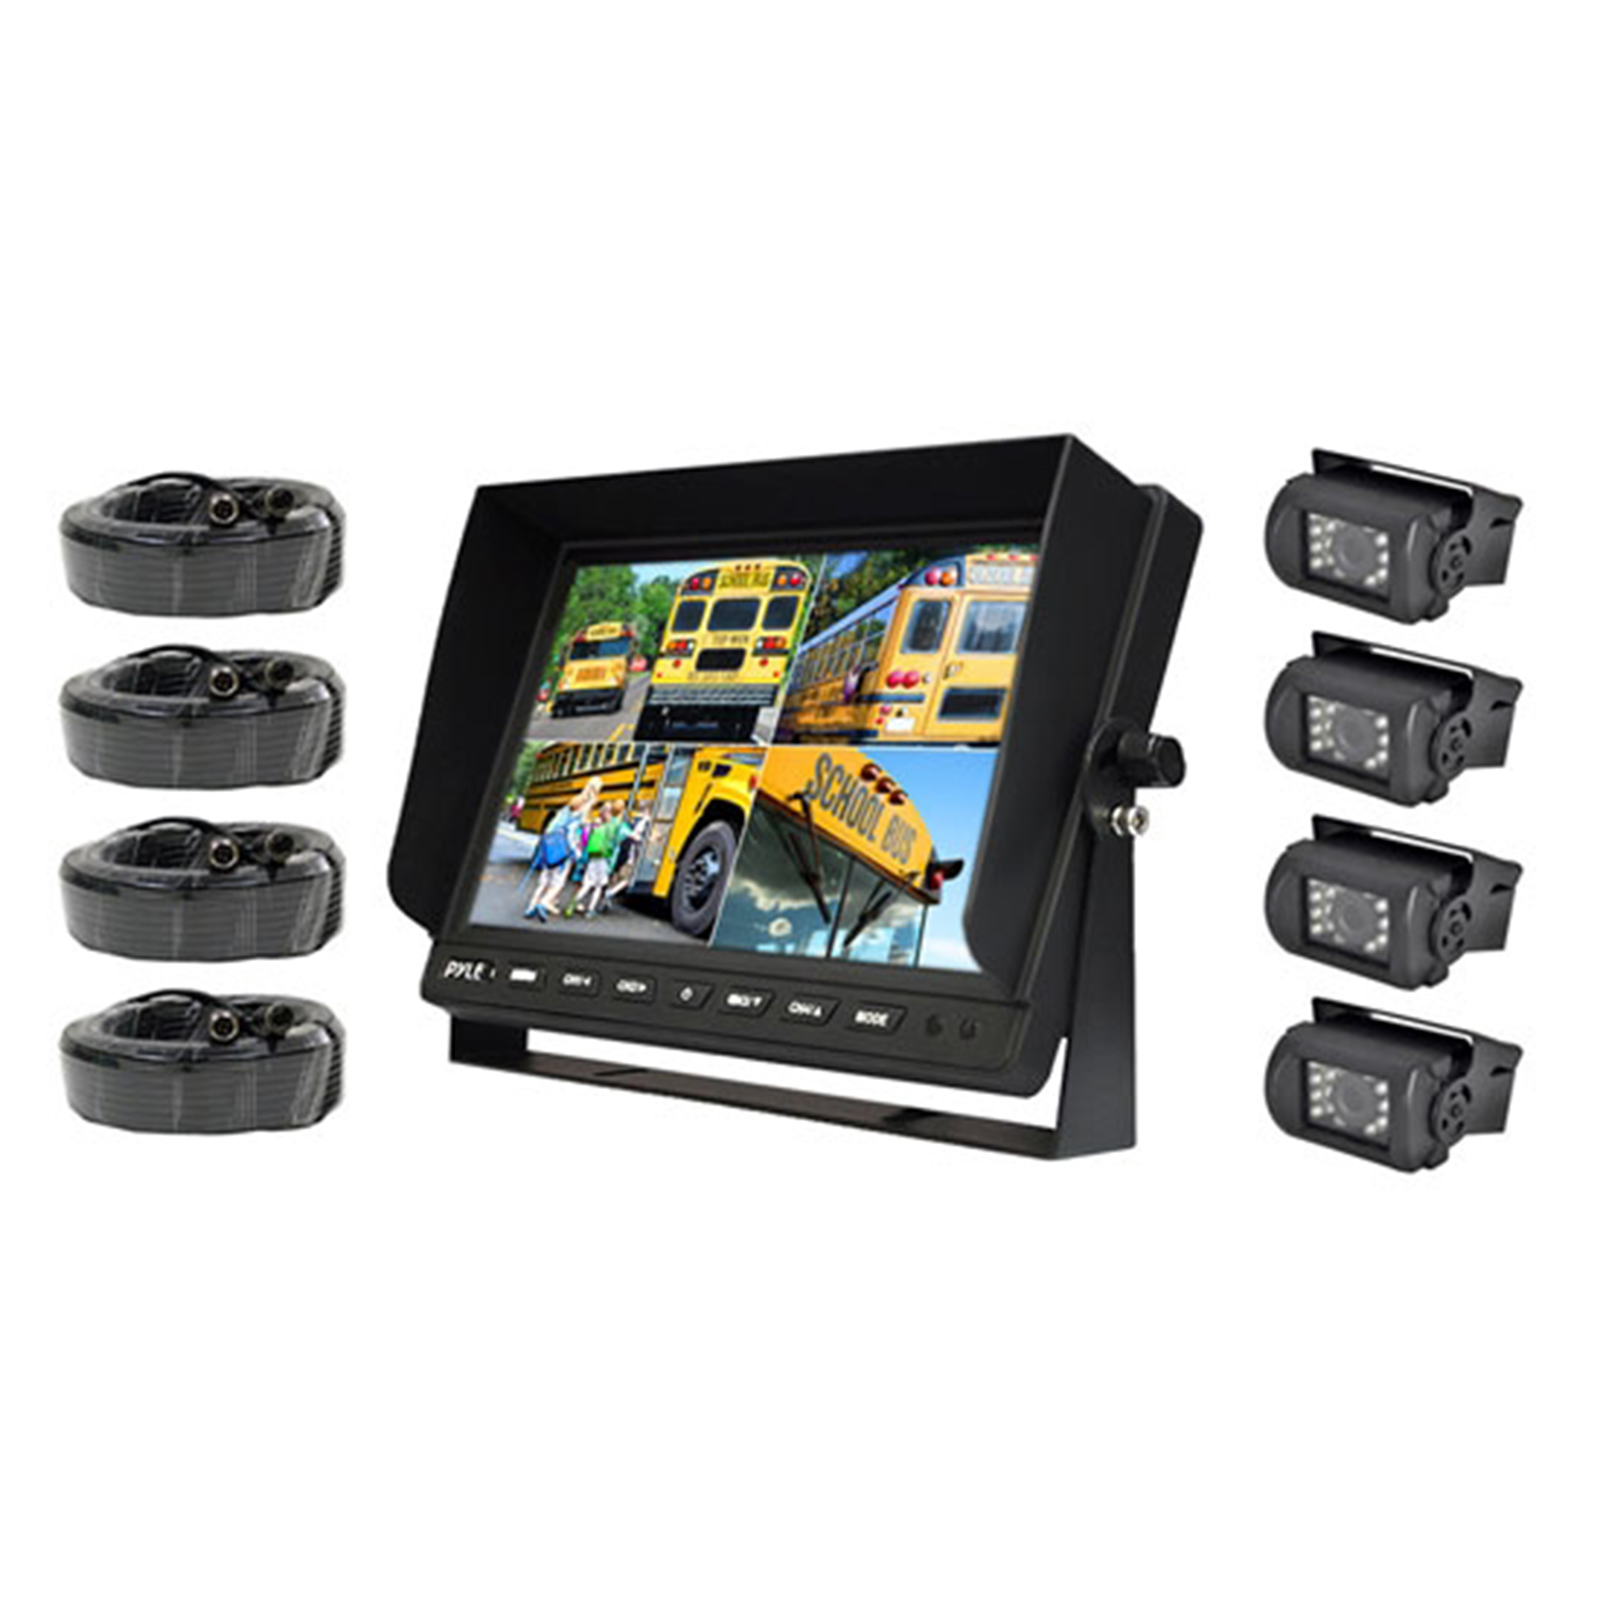 "Weatherproof Rearview Backup Camera & Monitor Safety Driving Video System, 10"" Monitor, (4) Night Vis Cameras, Commercial Grade, Dual DC Voltage 12-24 for Bus, Truck, Trailer, Van"